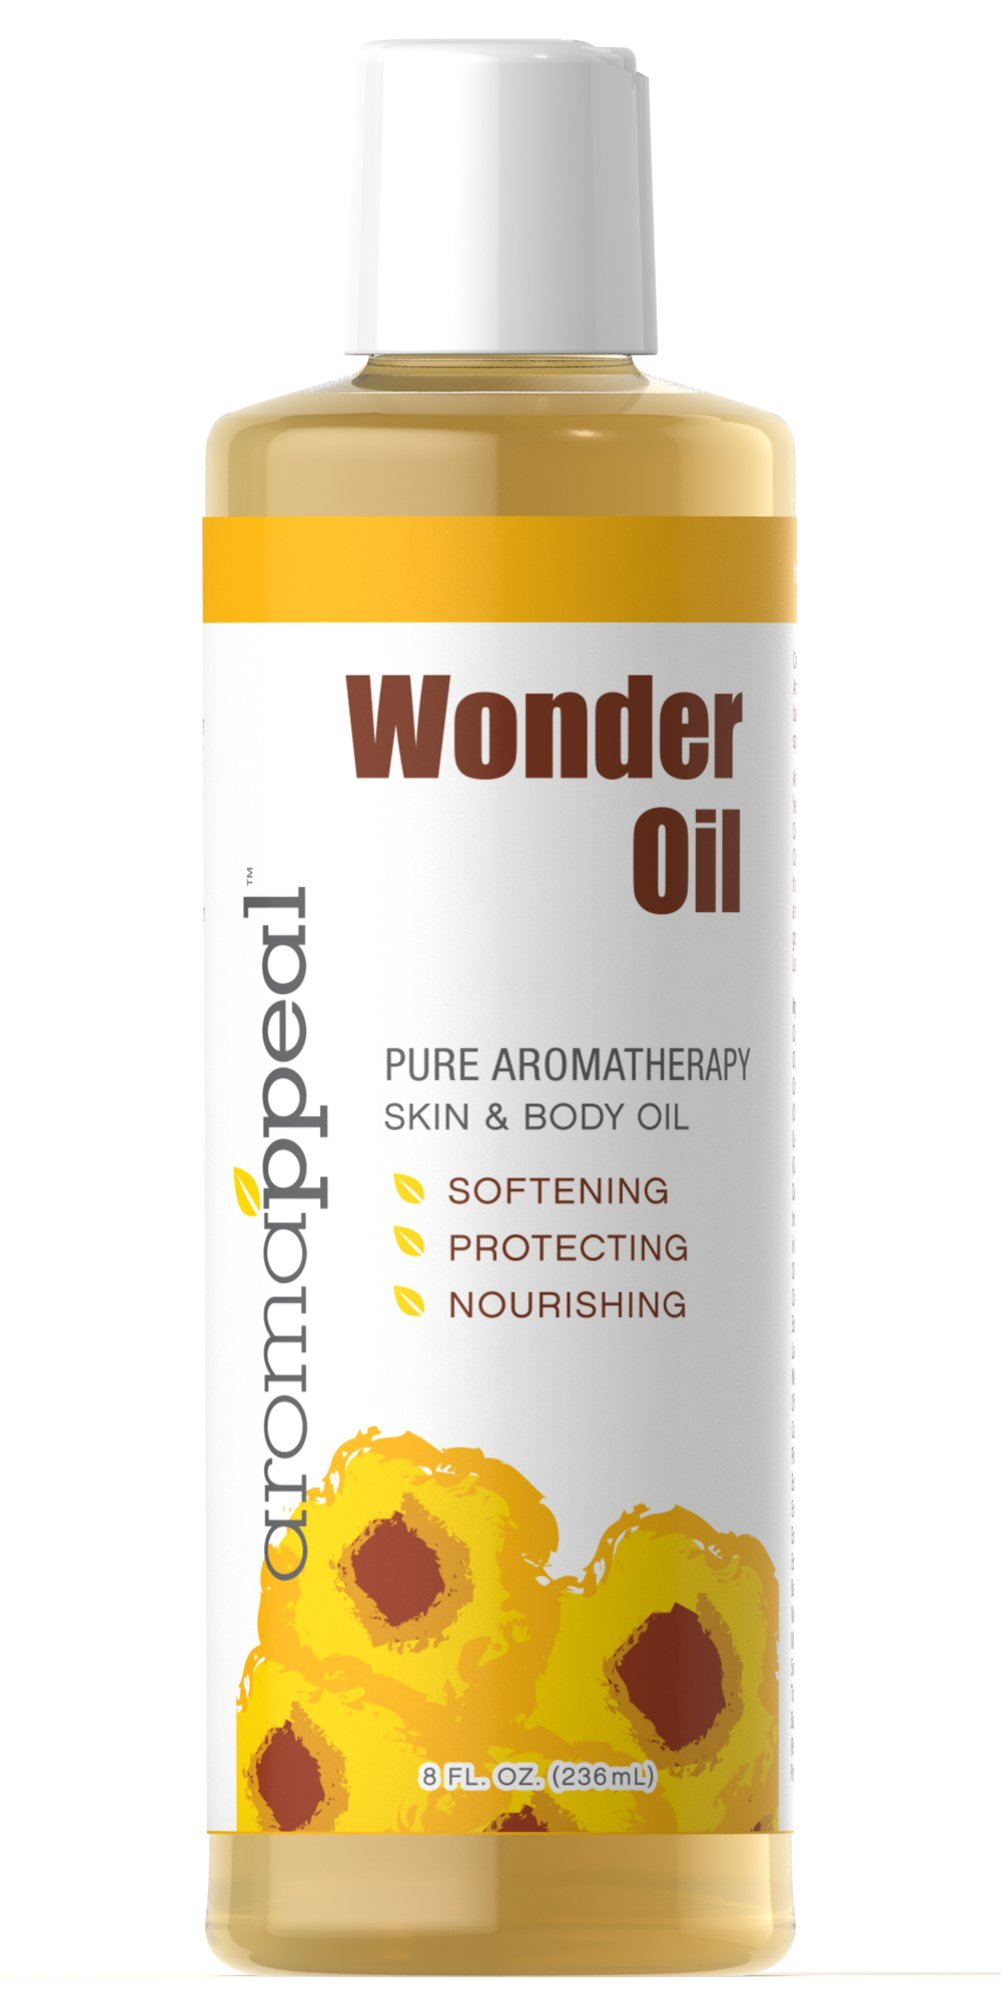 Wonder Oil <p><strong></strong></p><p><strong>This product is a customer favorite!</strong></p><p>A wonderful fusion of oils, herbs and fruits for the body. Includes a medley of Olive, Sunflower Seed, Wheat Germ, Sweet Almond, Sesame and Jojoba Oils Enriched with the lively citrus scents of Grapefruit, Lemon and Orange.</p><p>Use this Aromappeal product as a hot oil treatment for the hair, as a bath oil, or as a hair, body, massag